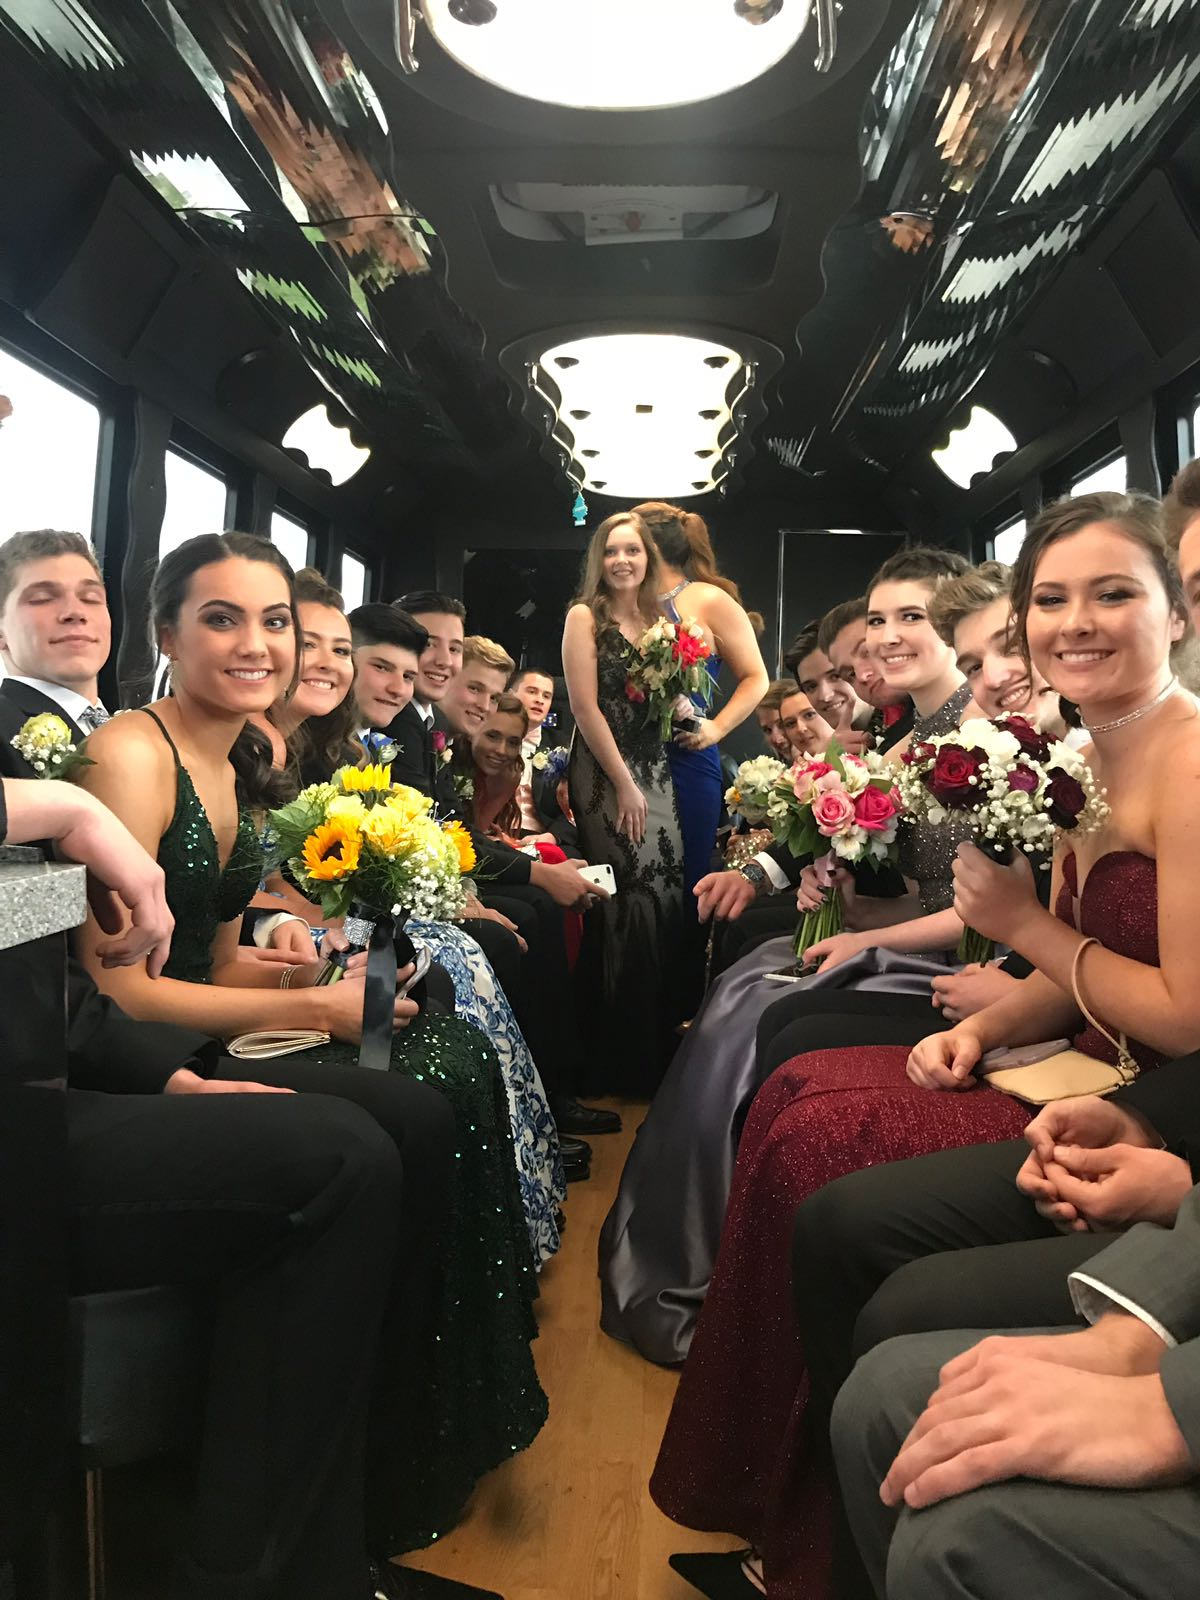 Image result for Prom Limo